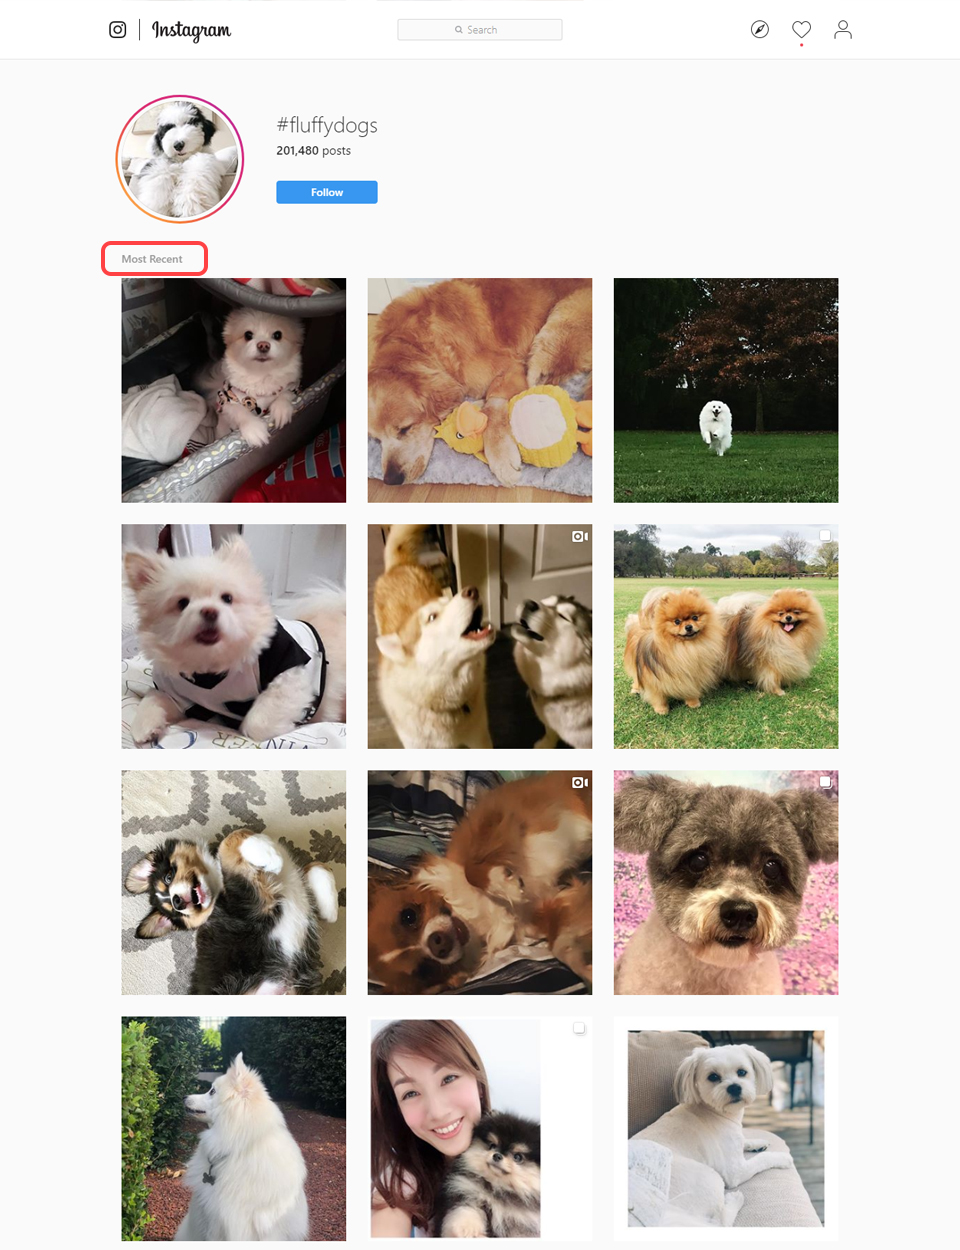 Fluffydogs most recent posts show pictures and videos of users posting with that hashtag